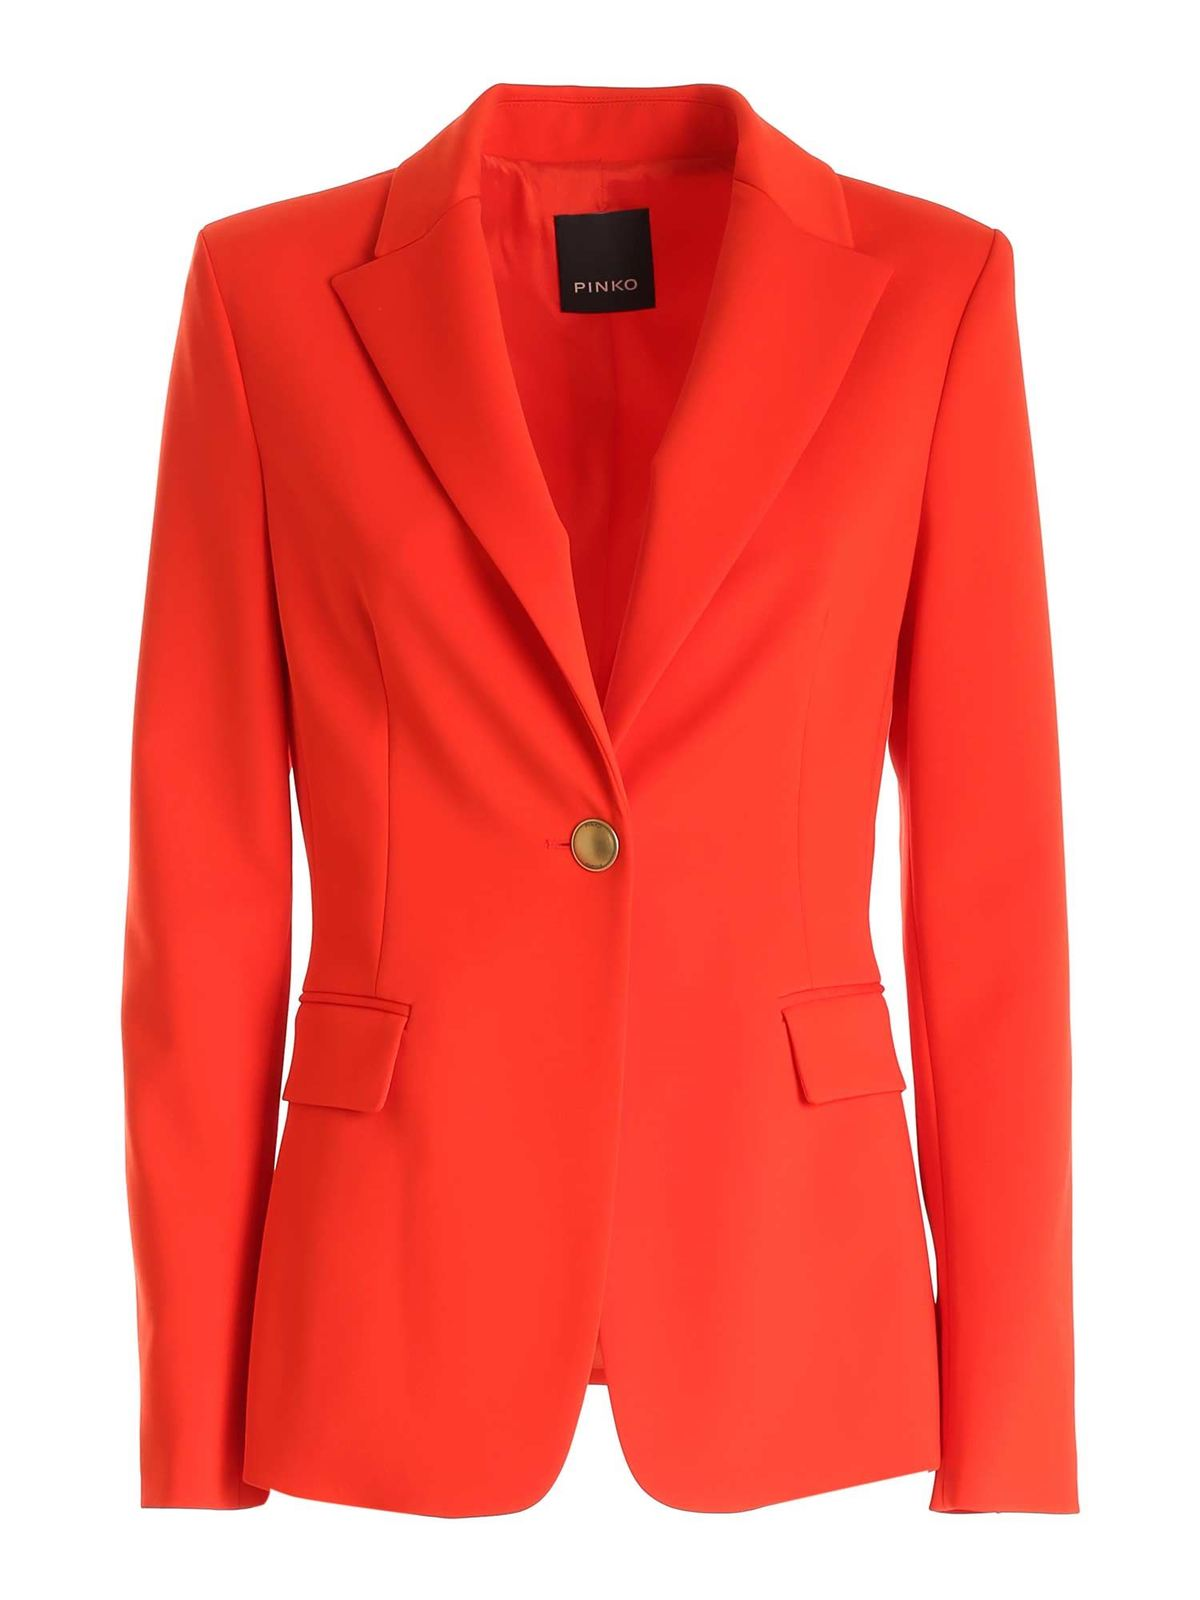 Pinko SIGMA 2 JACKET IN RED